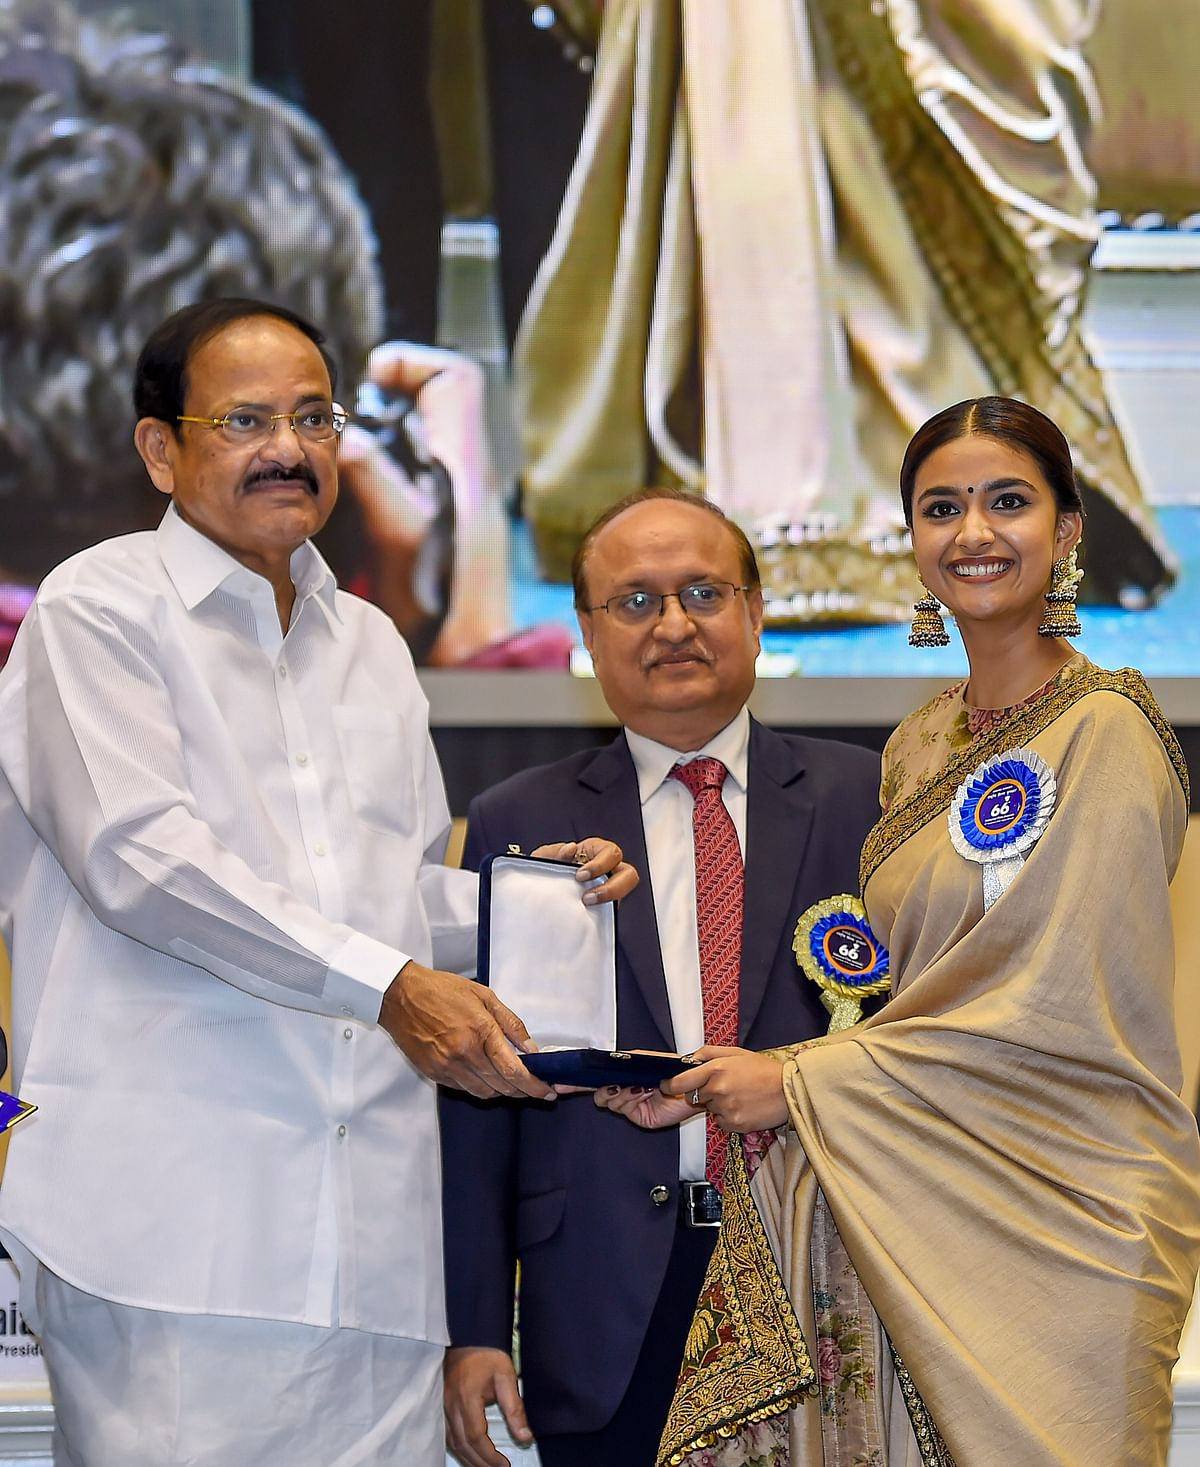 Vice President M Venkaiah Naidu presents Best Actress award to actress Keerthy Suresh for her role in Mahanati during the 66th National Film Awards function at Vigyan Bhavan in New Delhi. (PTI)